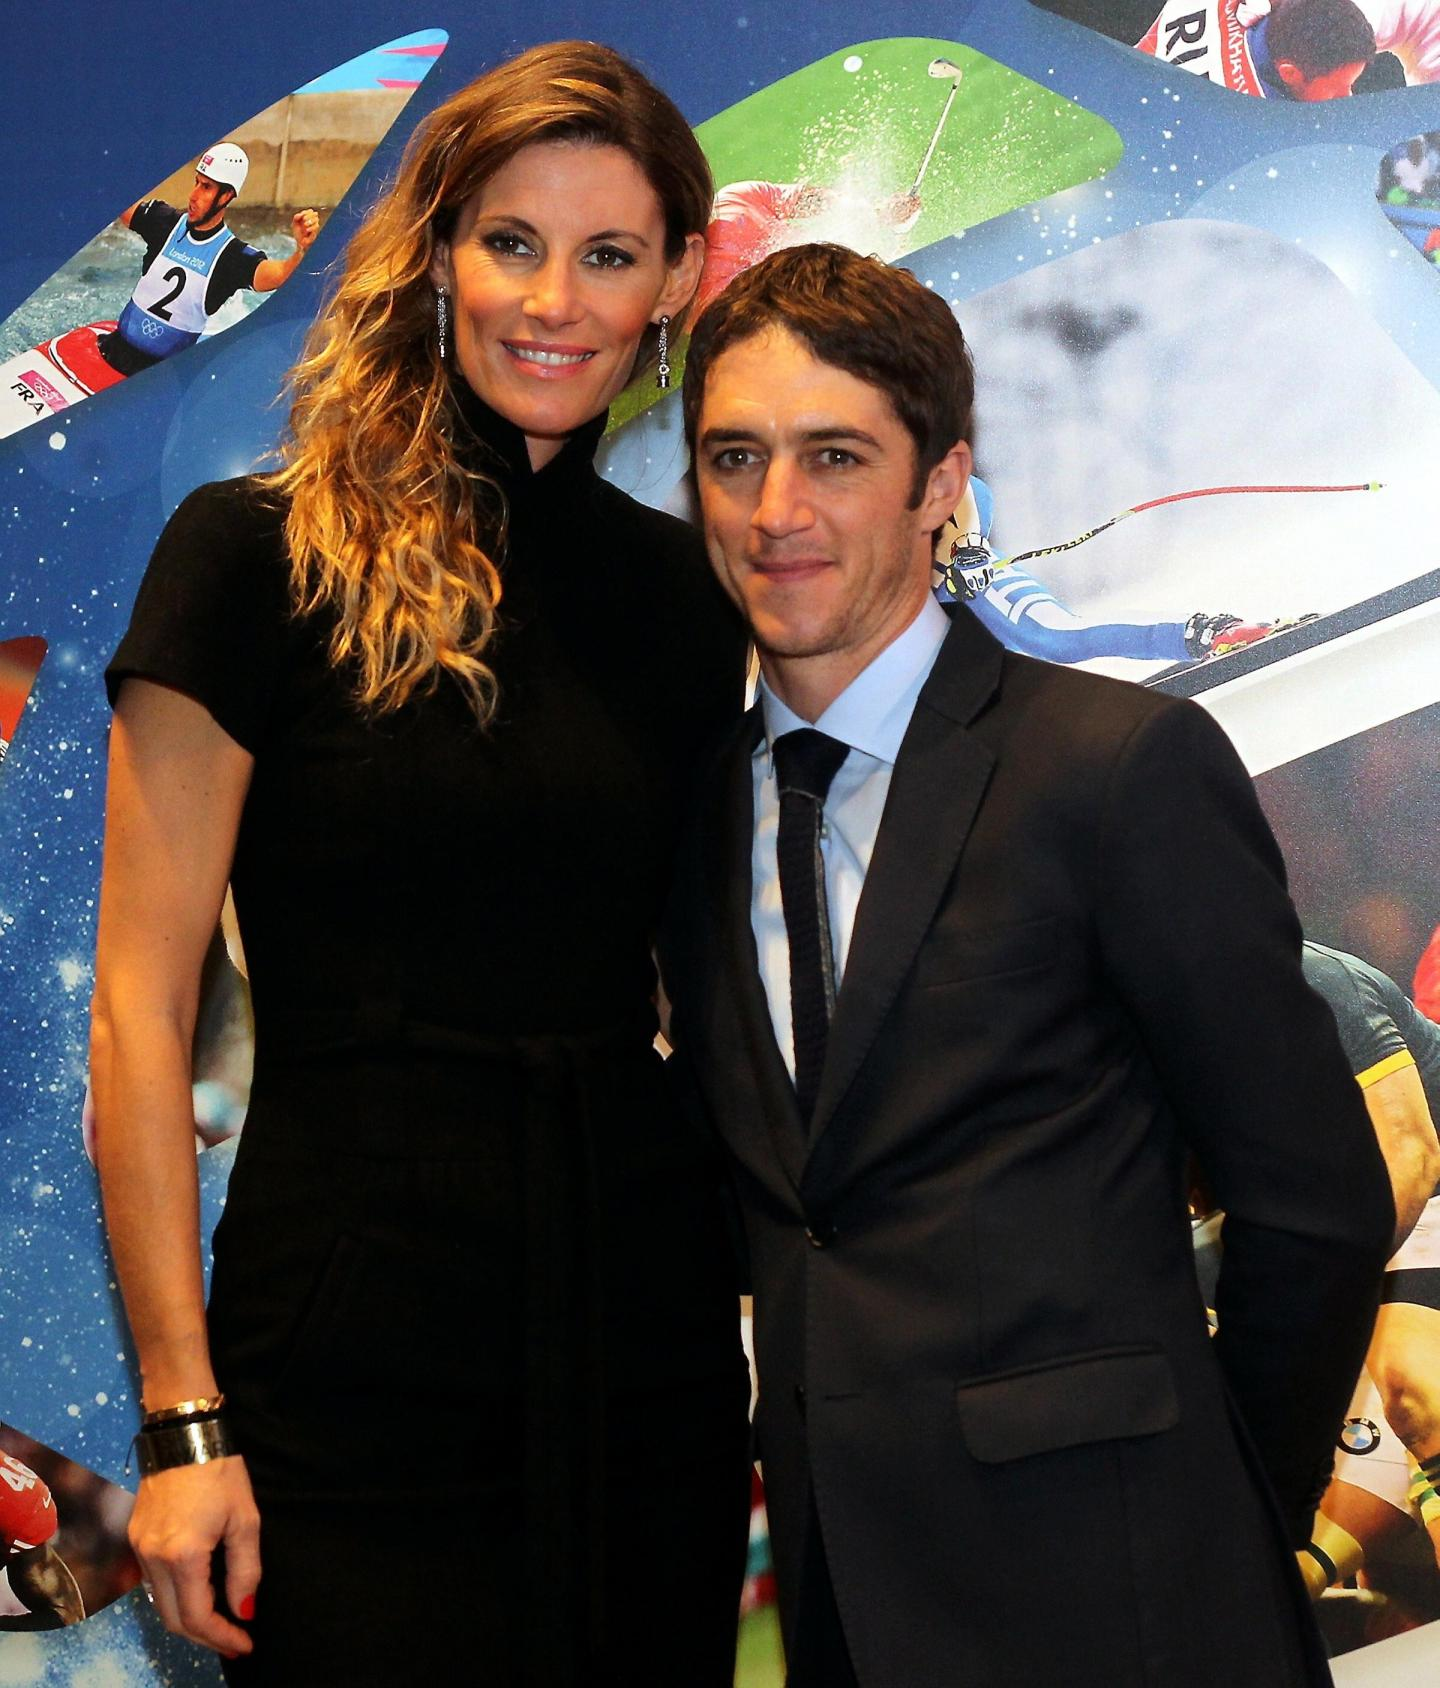 L'ex Miss France Sophie Thalmann accompagnait son mari, le jockey Christophe Soumillon, membre du jury.